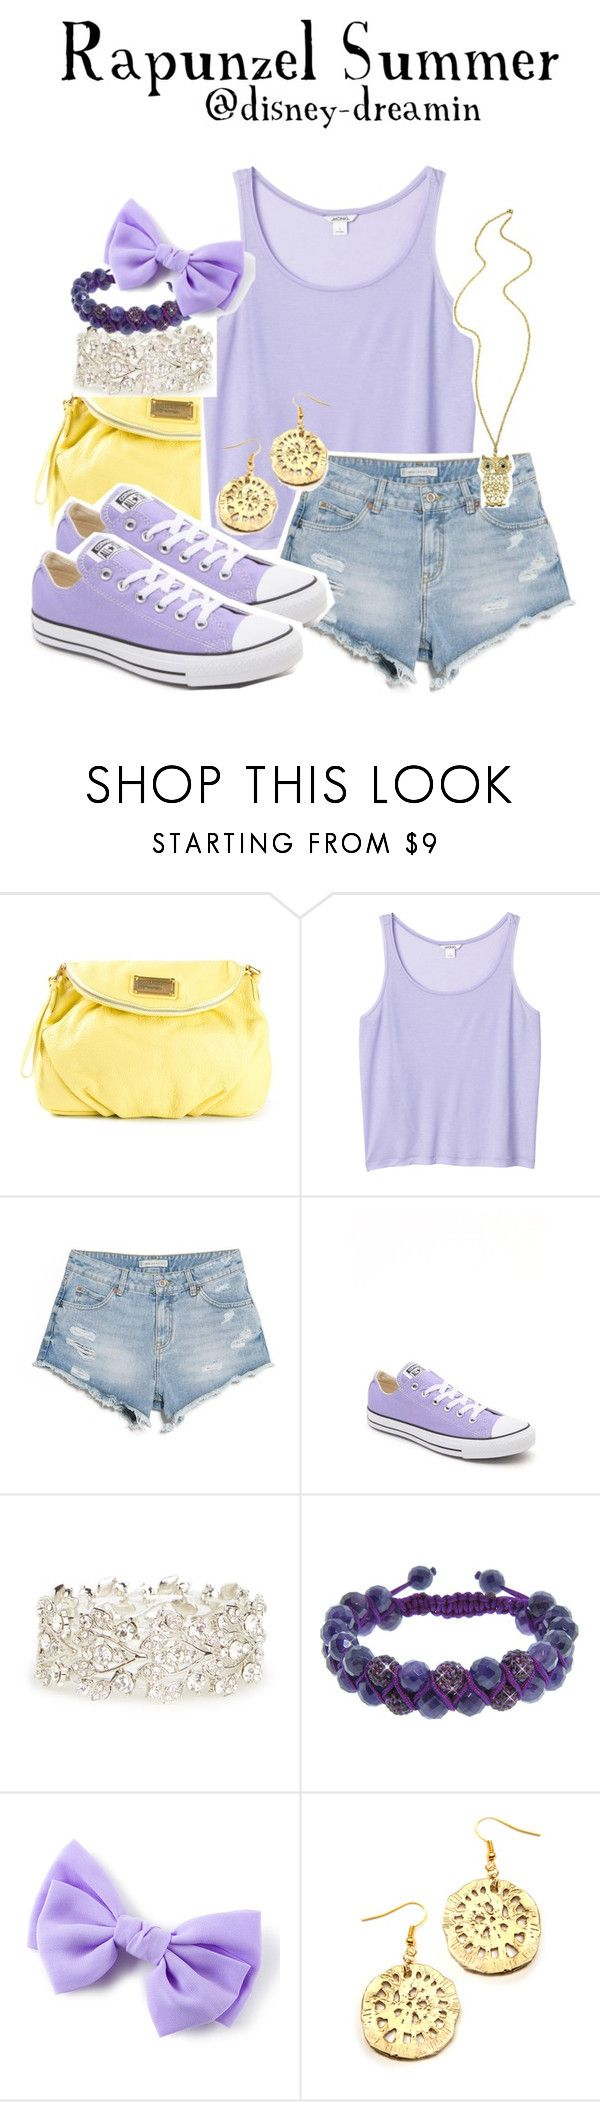 """""""Requested outfit- Rapunzel summer"""" by disney-dreamin ❤ liked on Polyvore featuring Marc by Marc Jacobs, Monki, MANGO, Converse, DailyLook, Eternally Haute and setsbydisneydreamin"""